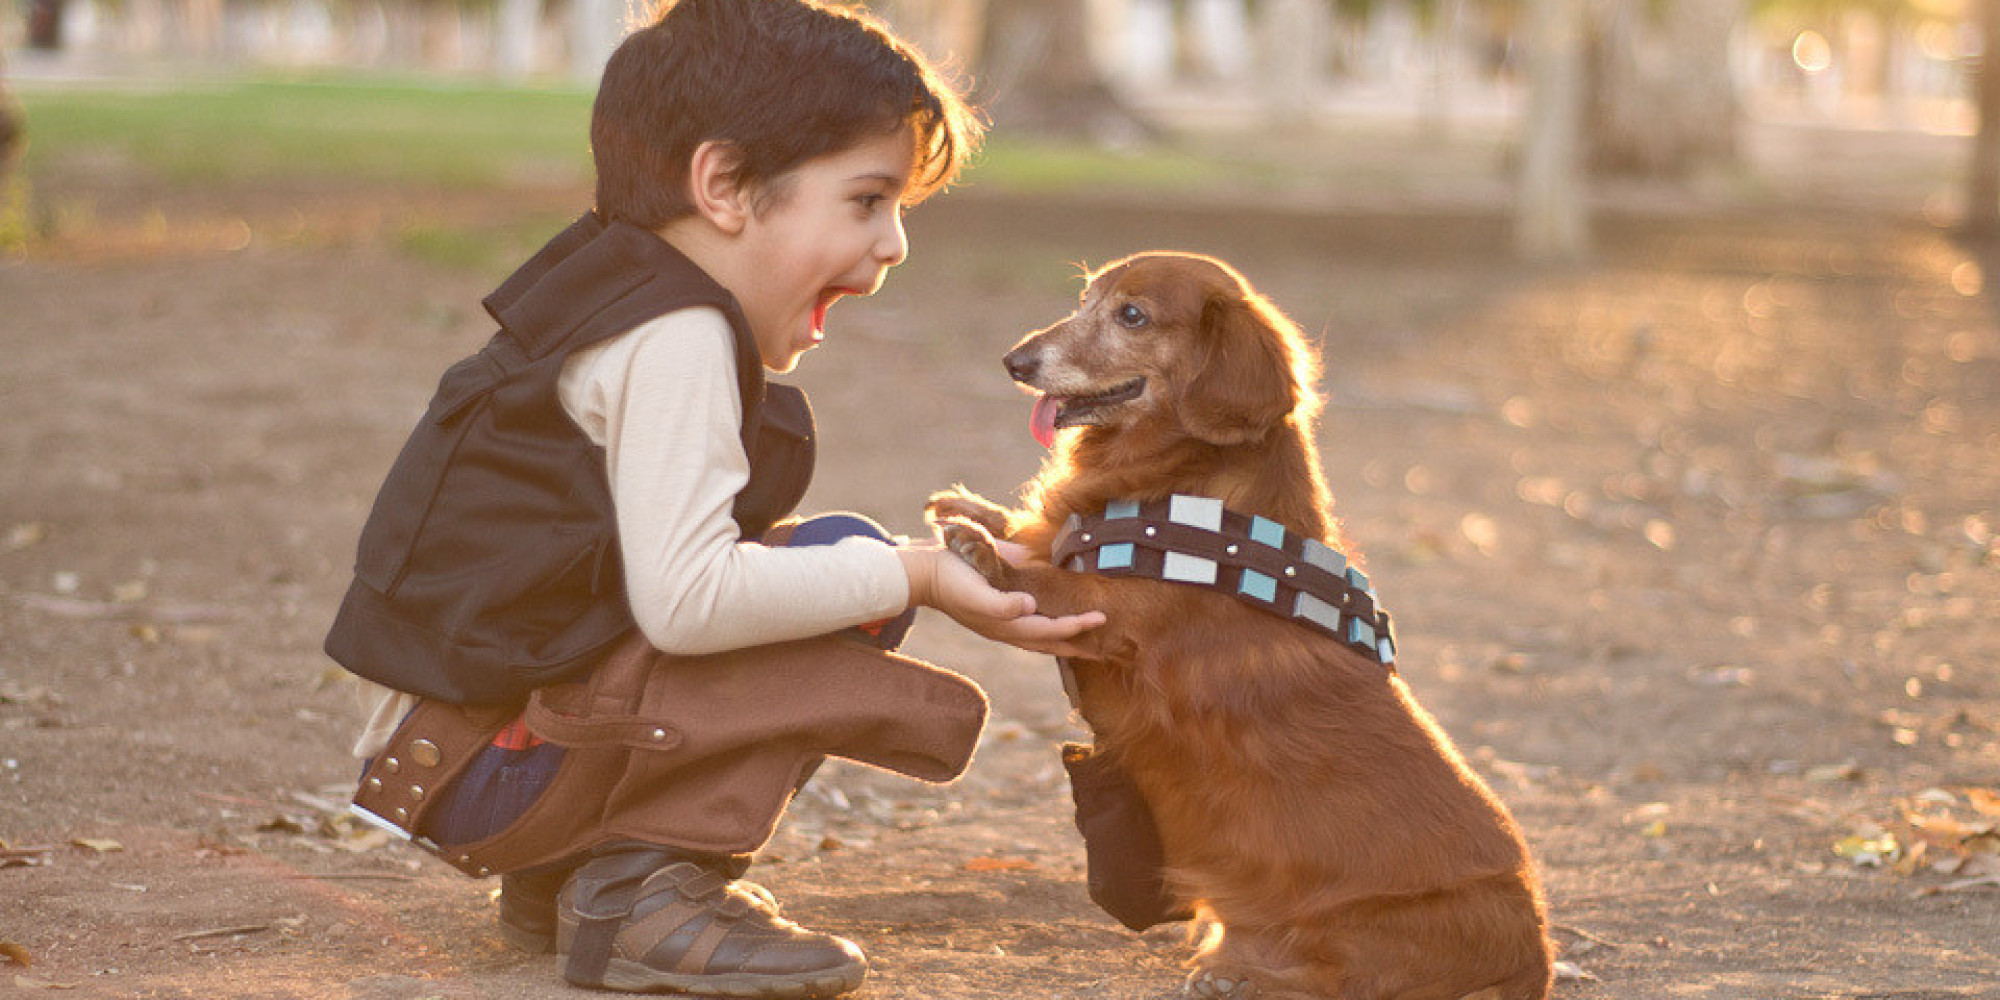 10 Adorable Halloween Costumes For Kids And Dogs That You Didnu0027t Know You Needed To See | HuffPost  sc 1 st  HuffPost & 10 Adorable Halloween Costumes For Kids And Dogs That You Didnu0027t ...